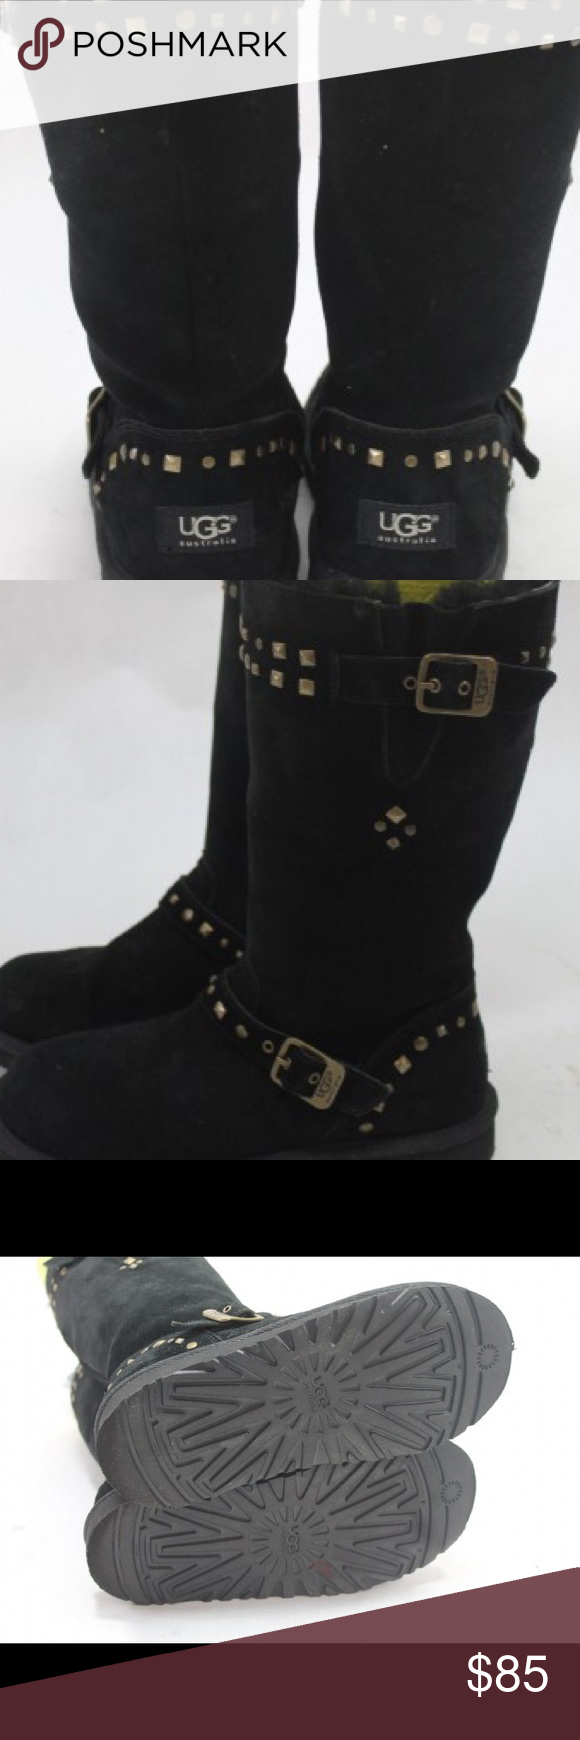 56089e7501f Gorgeous Gold Studded Ugg Boots!! Tall Black Ugg Boots with studded ...